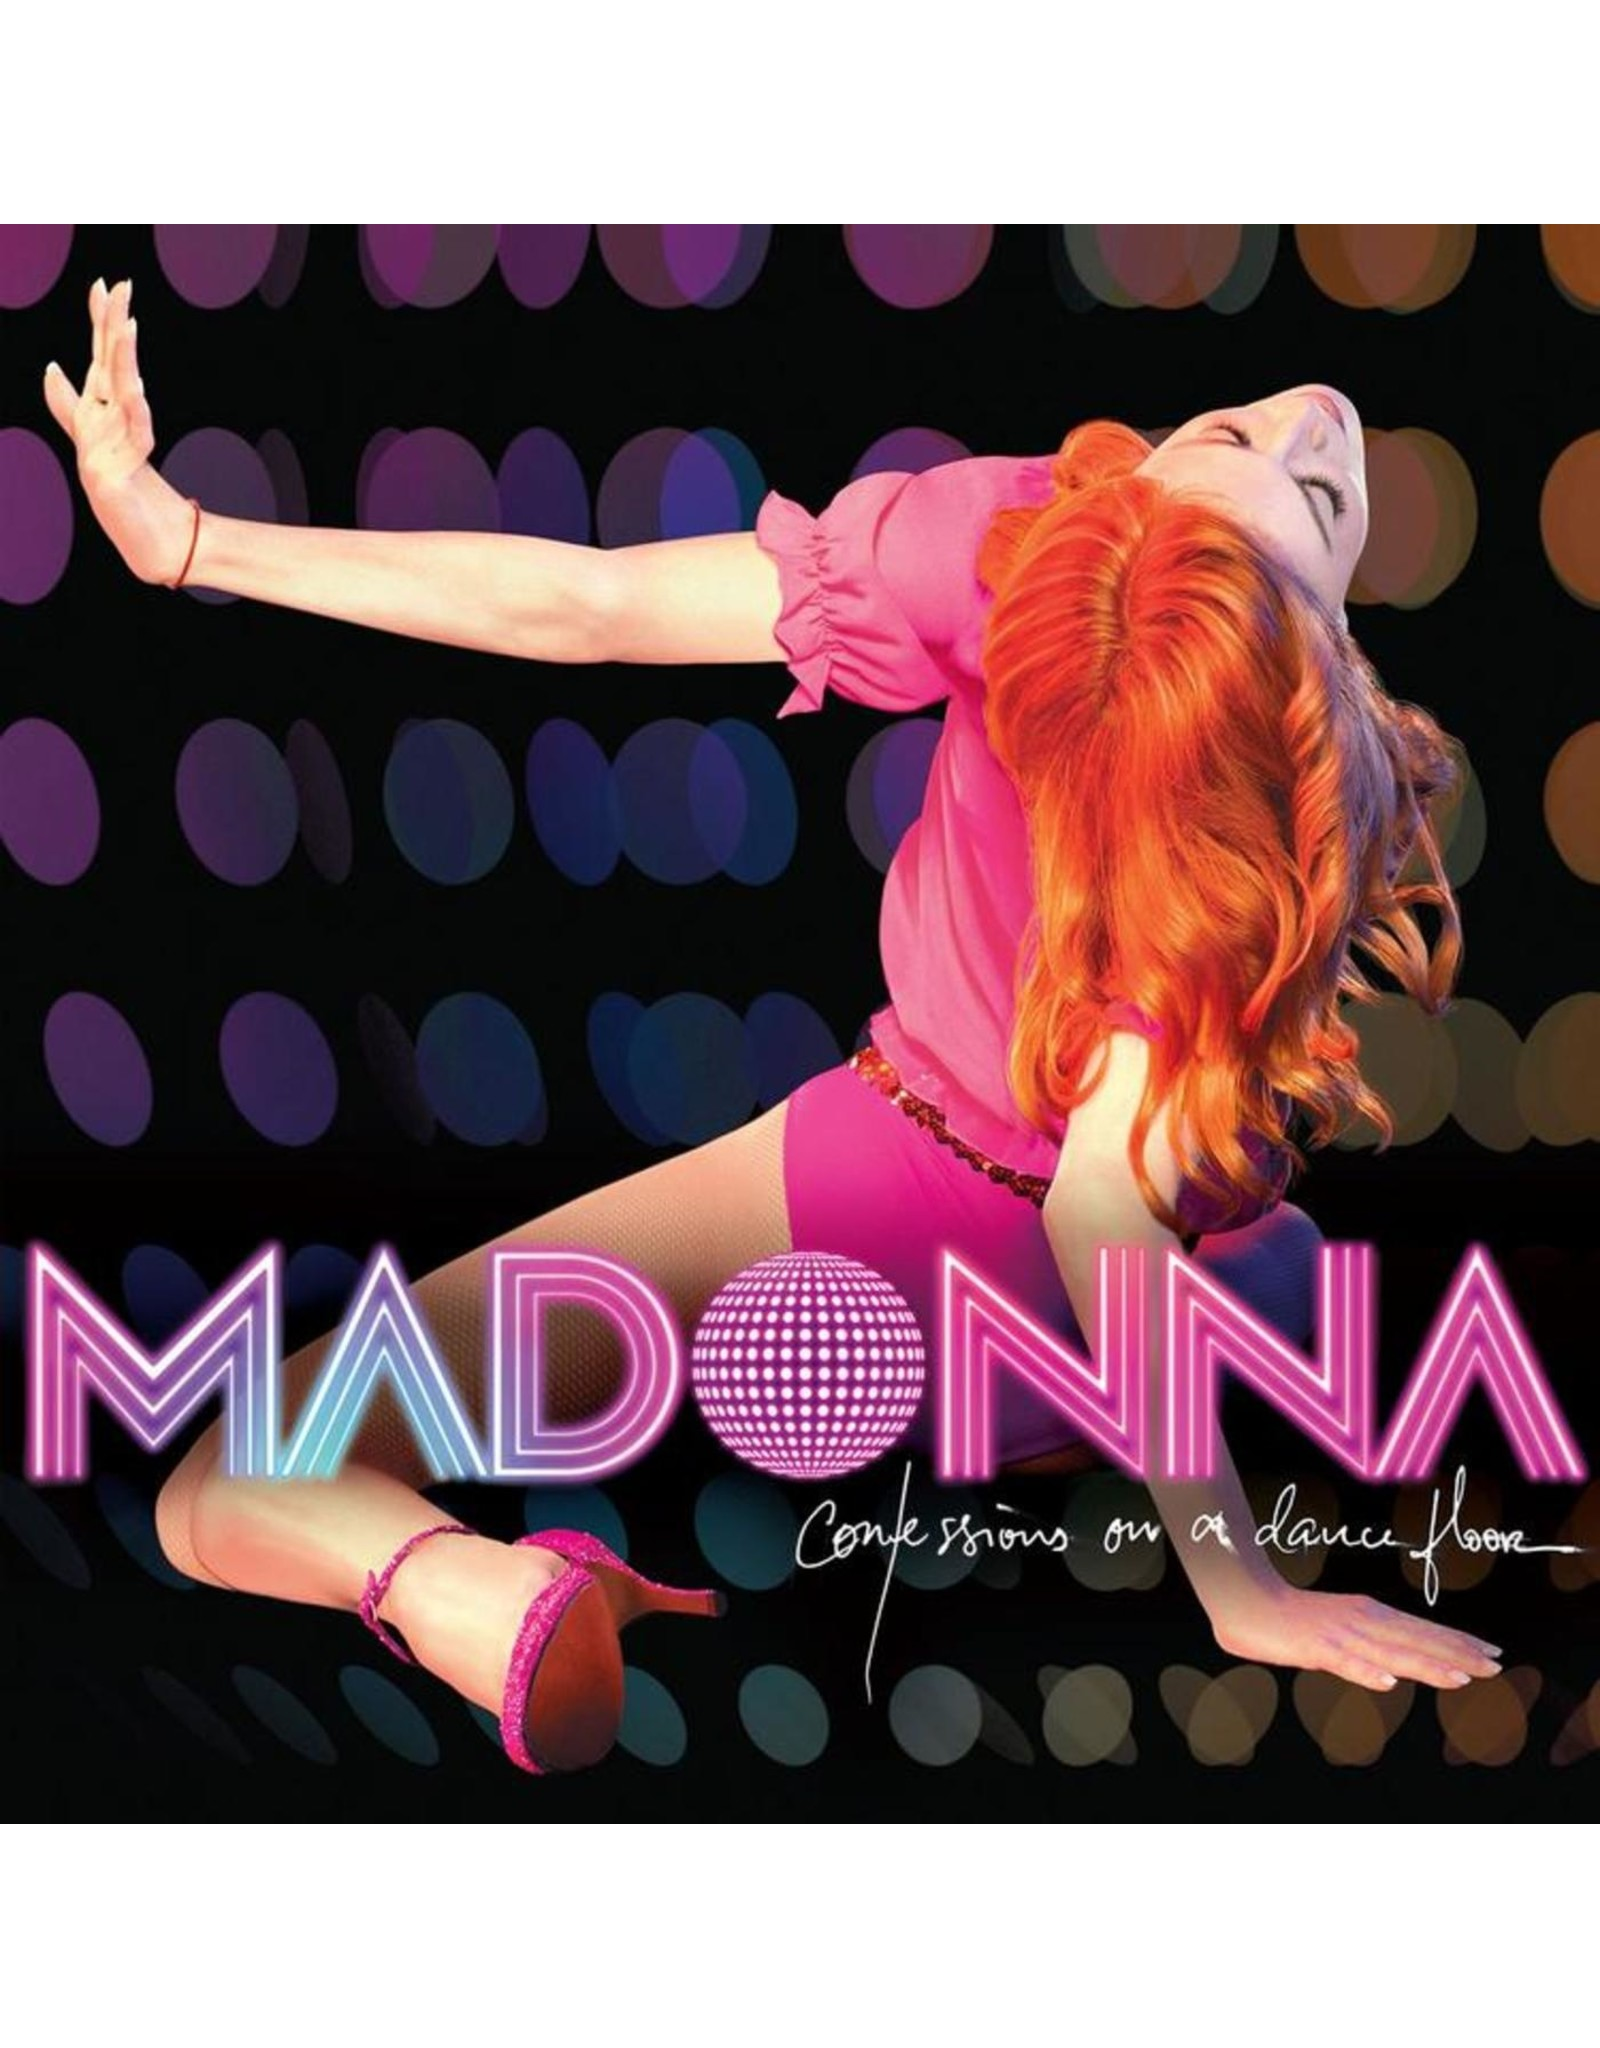 Madonna - Confessions on a Dance Floor (Pink Vinyl)